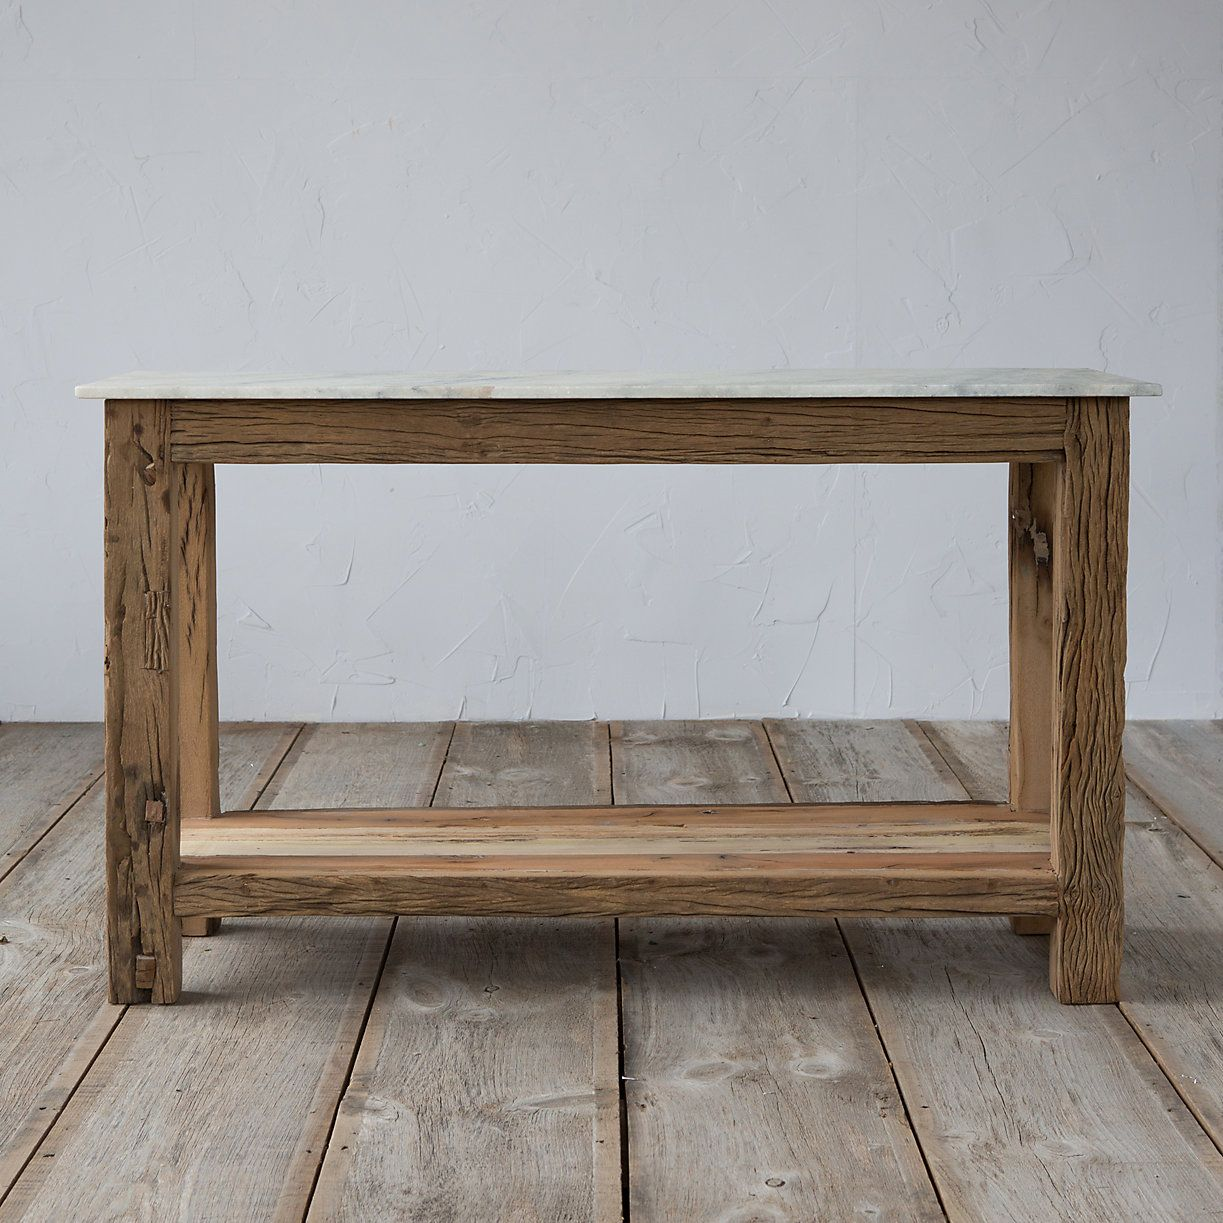 Charmant A Clean, Marble Top Pairs With Rustic Legs Of Recycled Mango Wood To Form  This